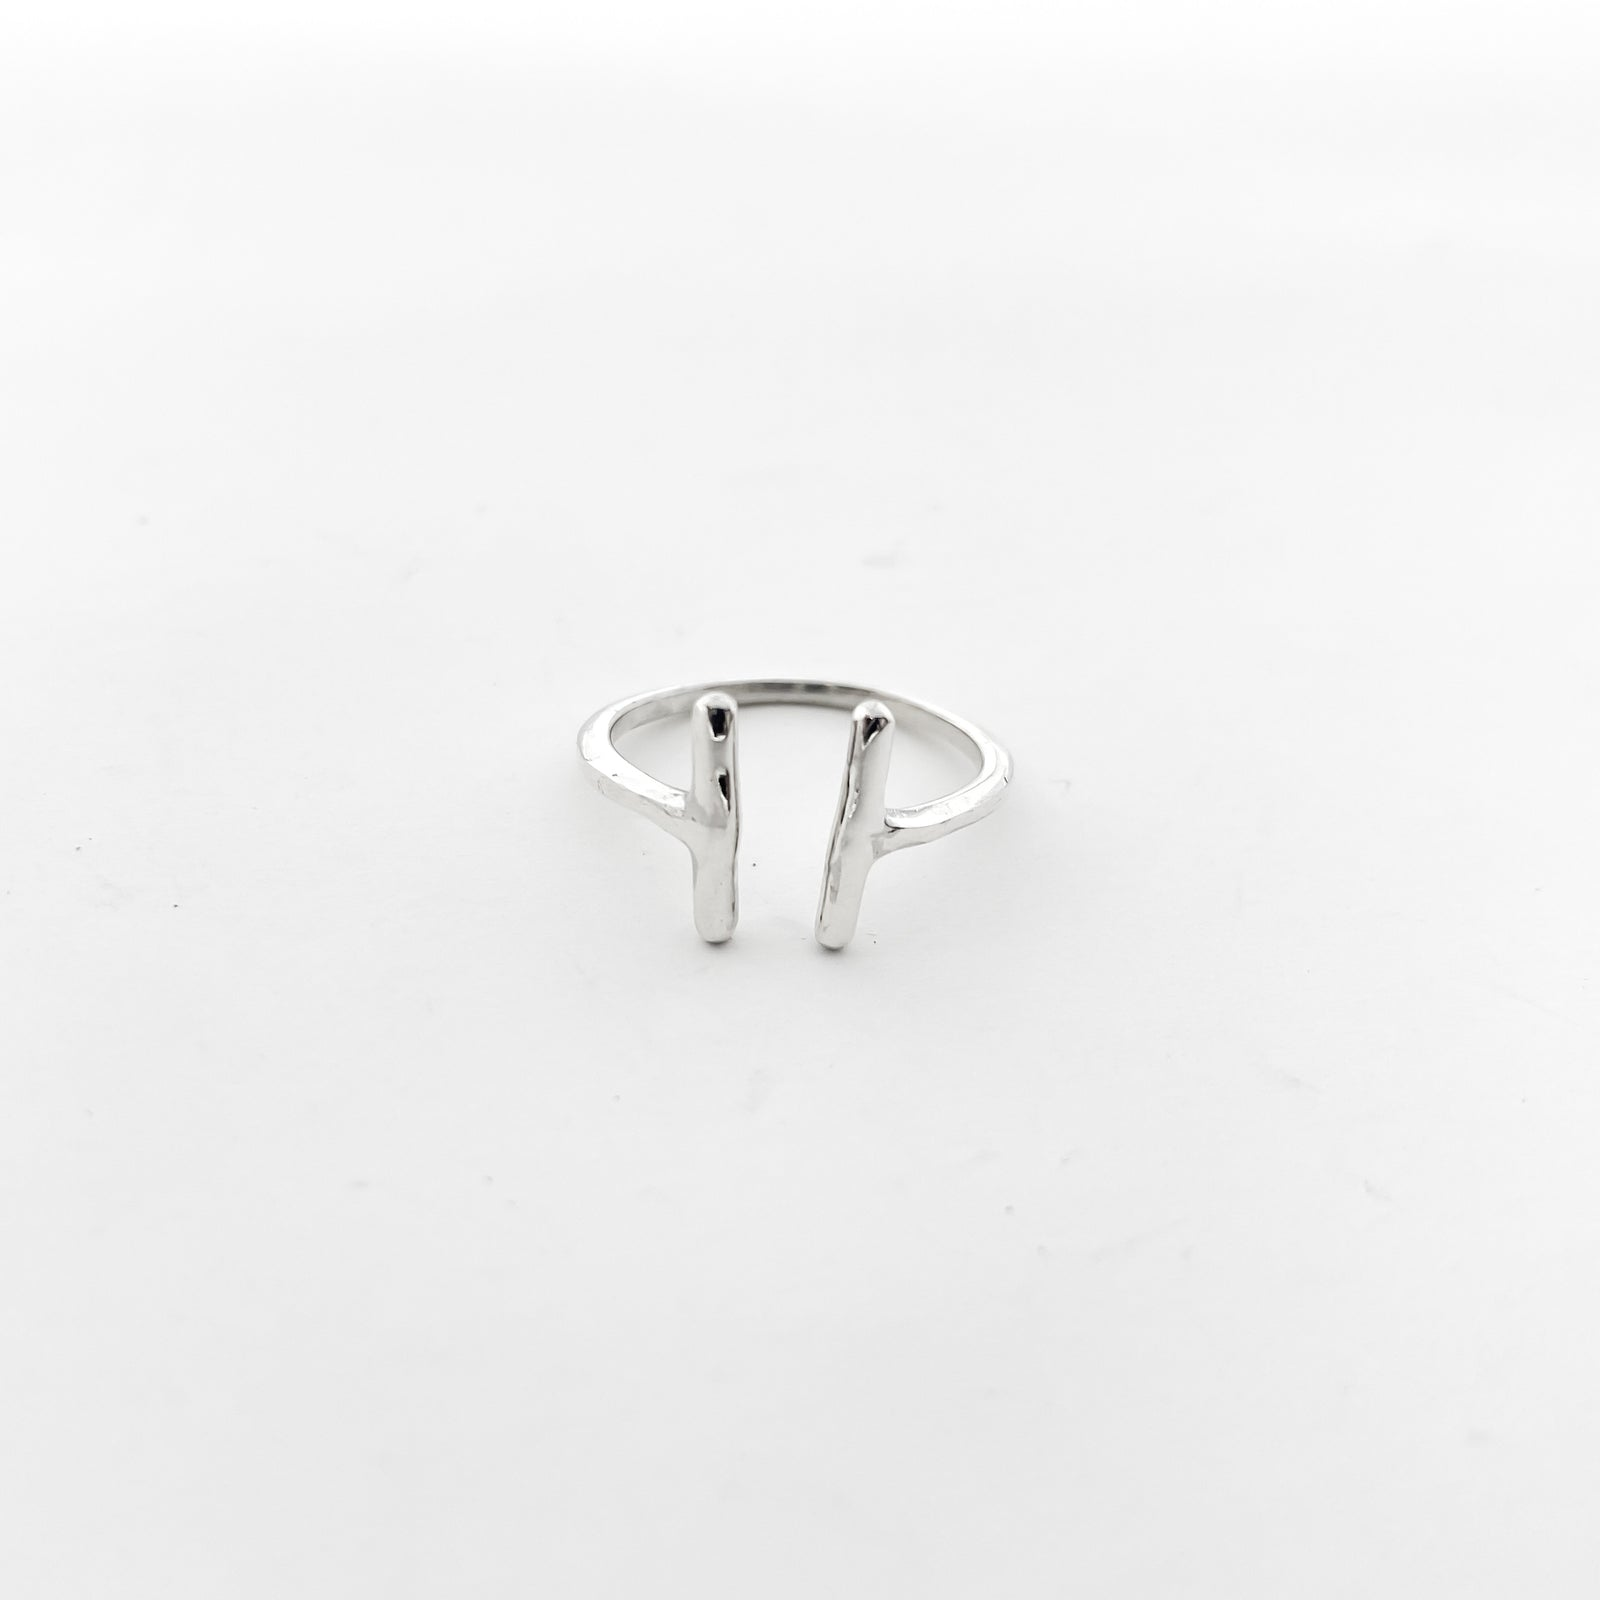 PARALLEL BARS RINGS | STERLING SILVER | SIZE OPTIONS